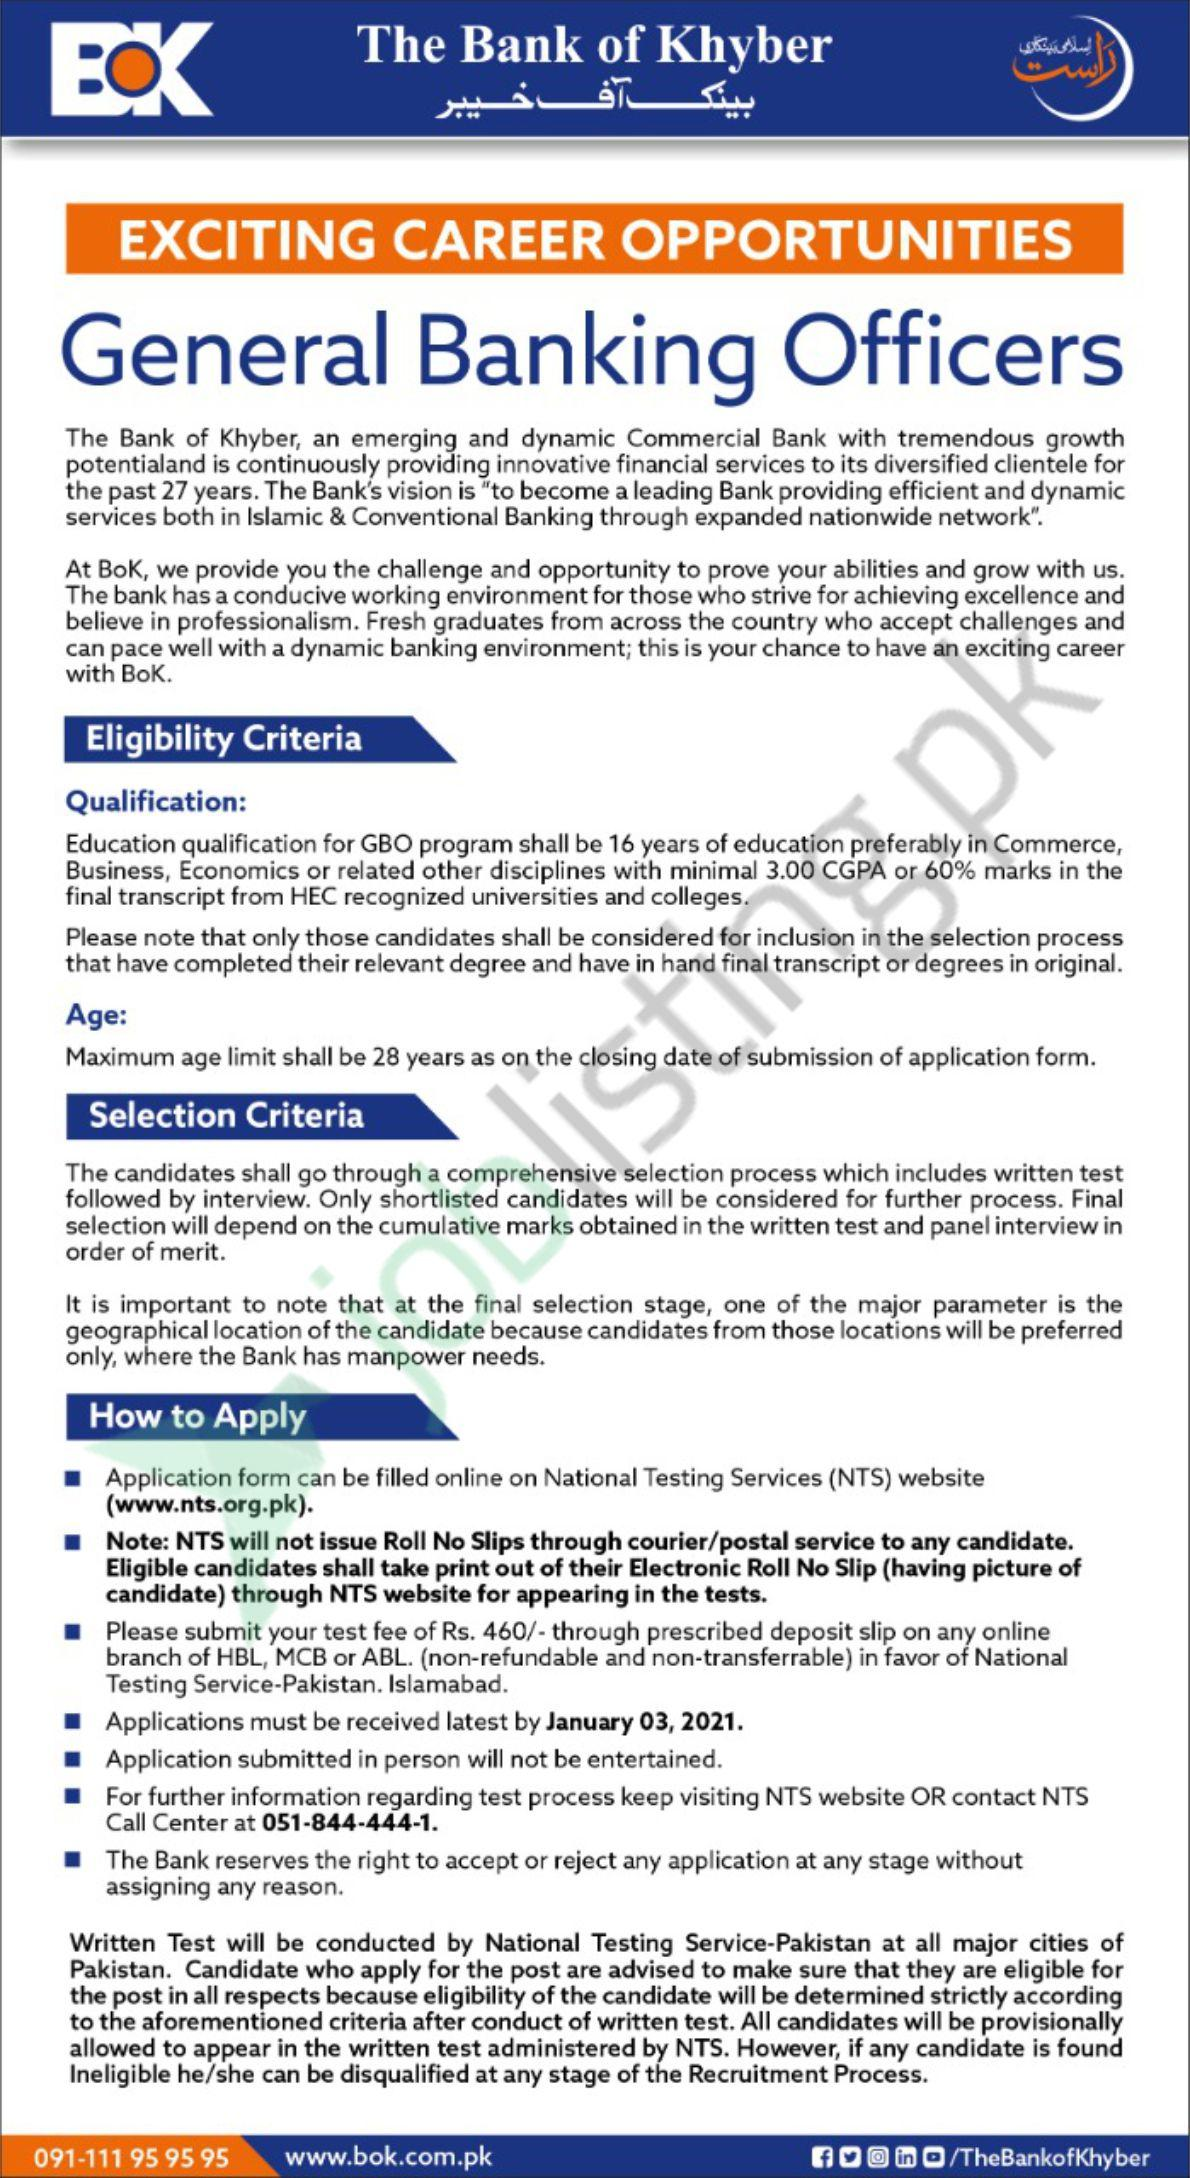 Exciting Career Opportunities in Bank of Khyber